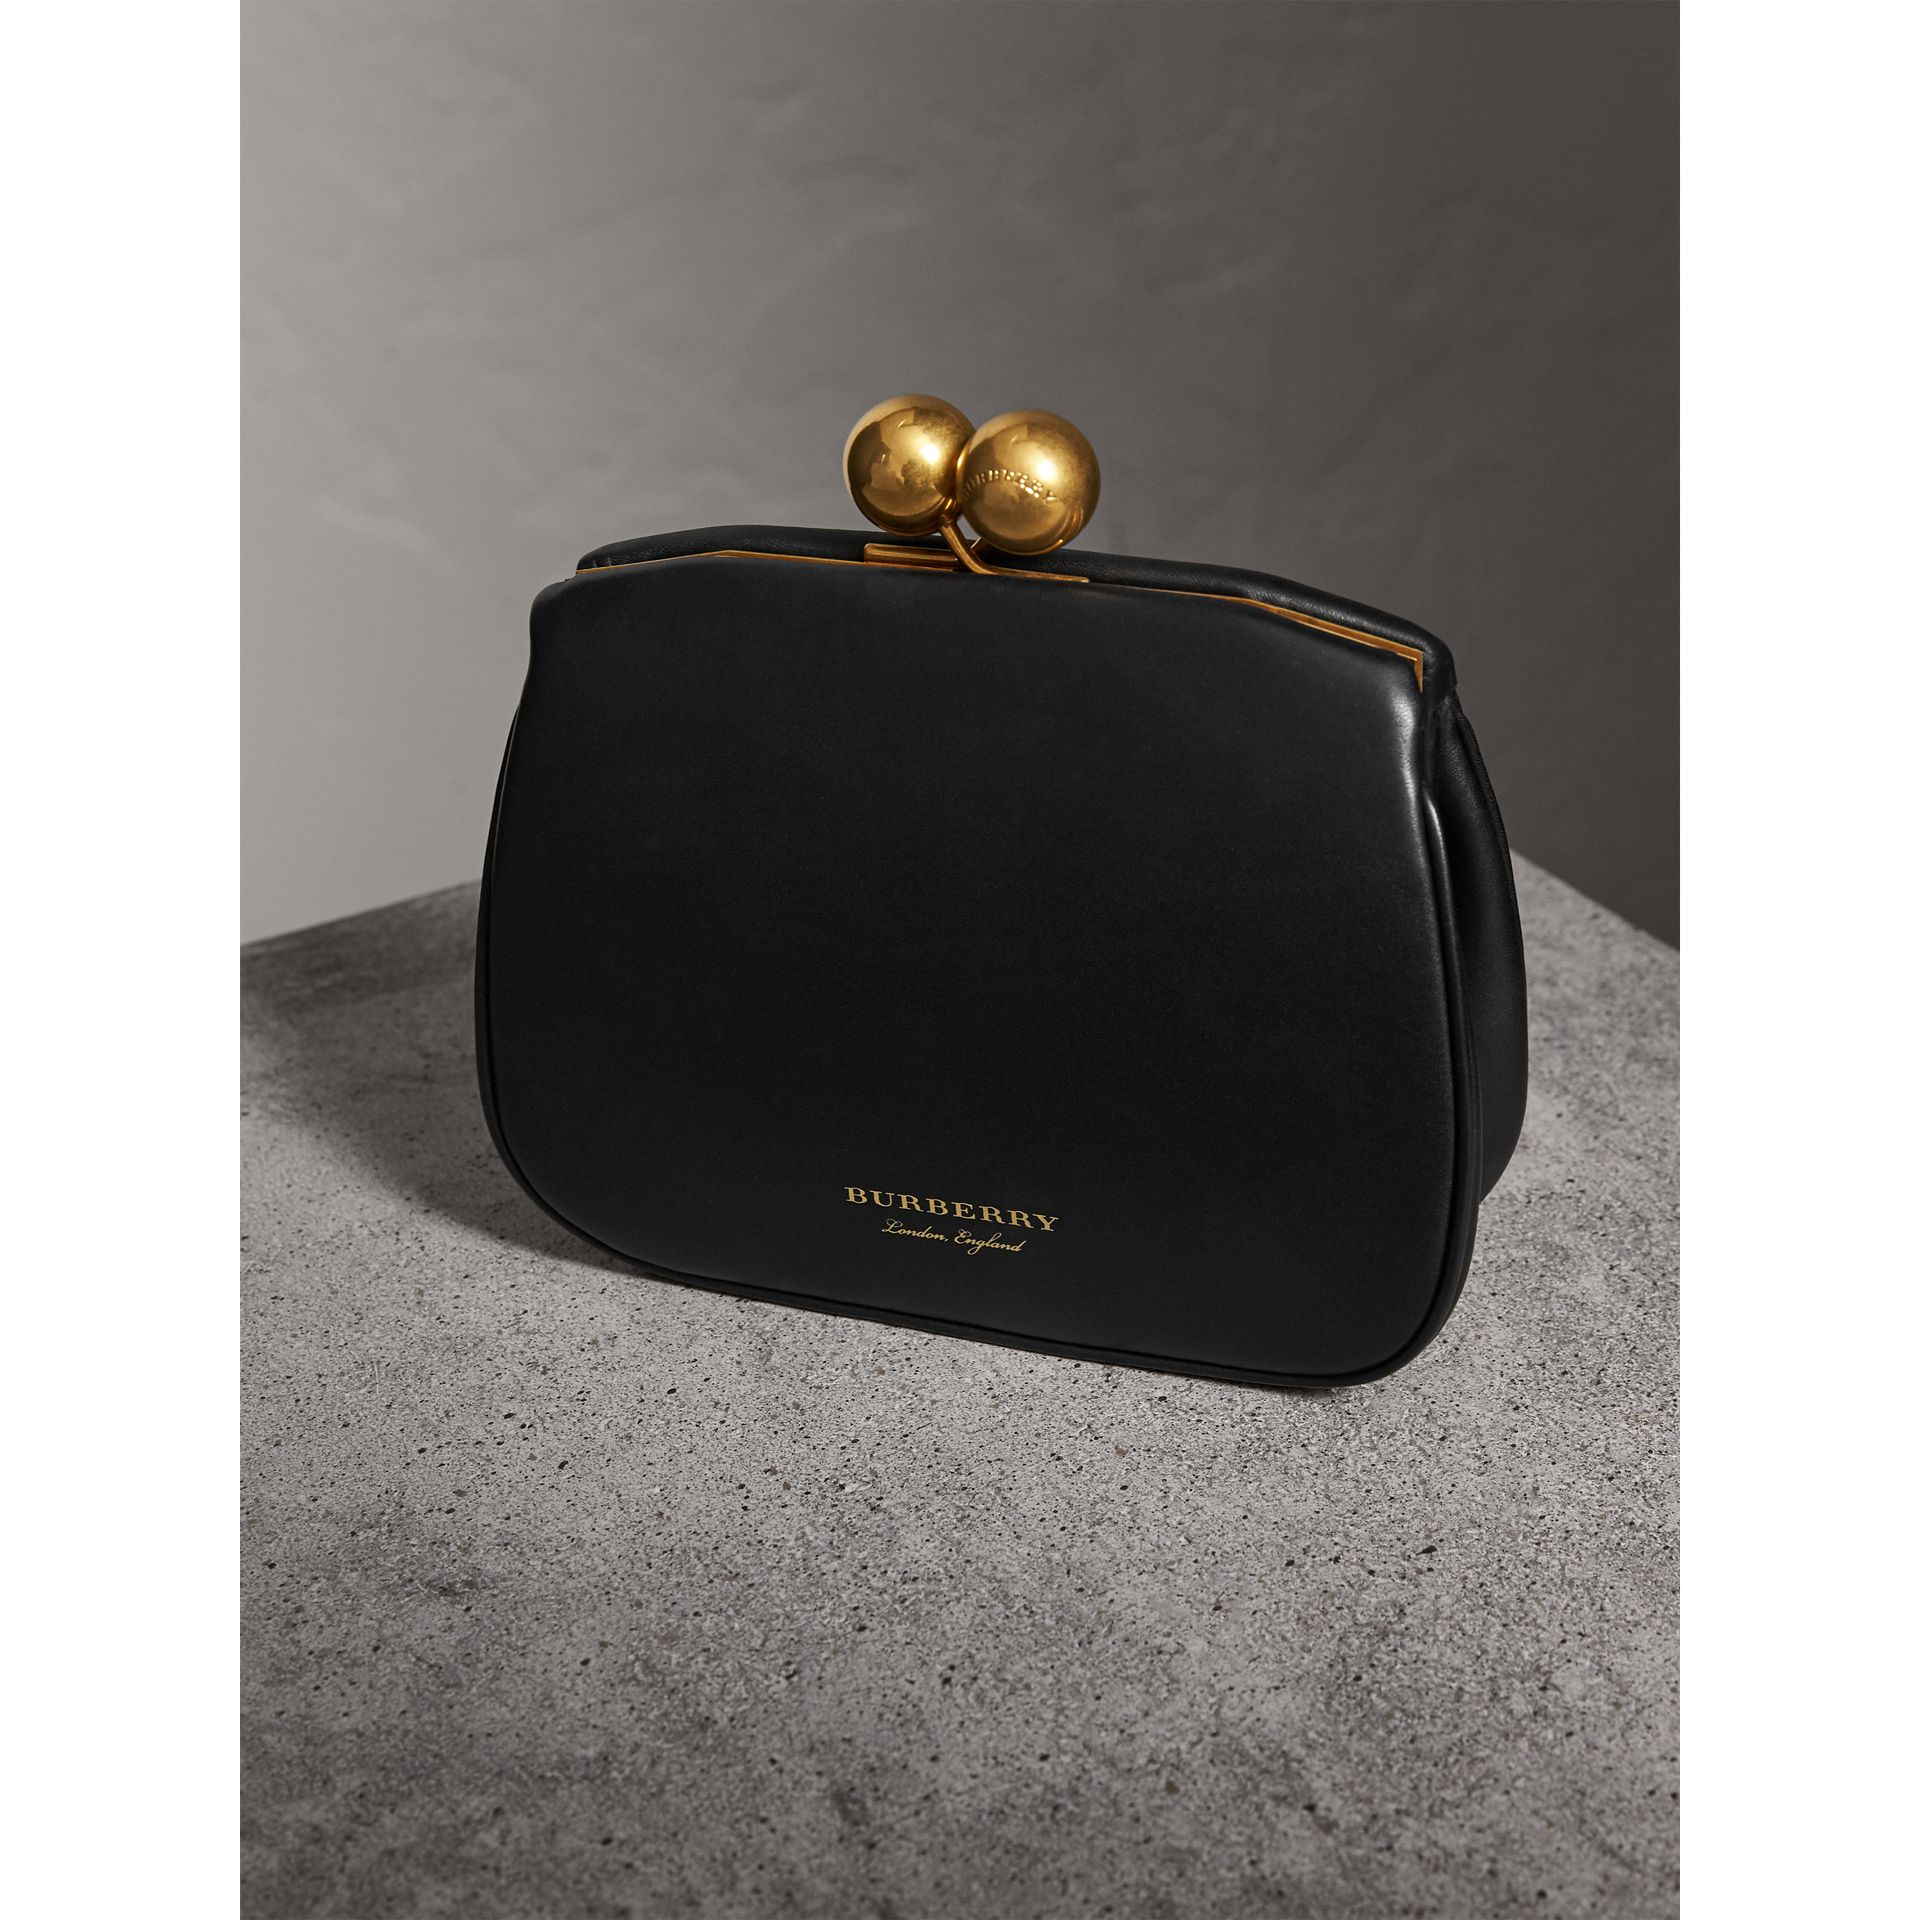 Small Leather Metal Frame Clutch Bag in Black - Women | Burberry - gallery image 4